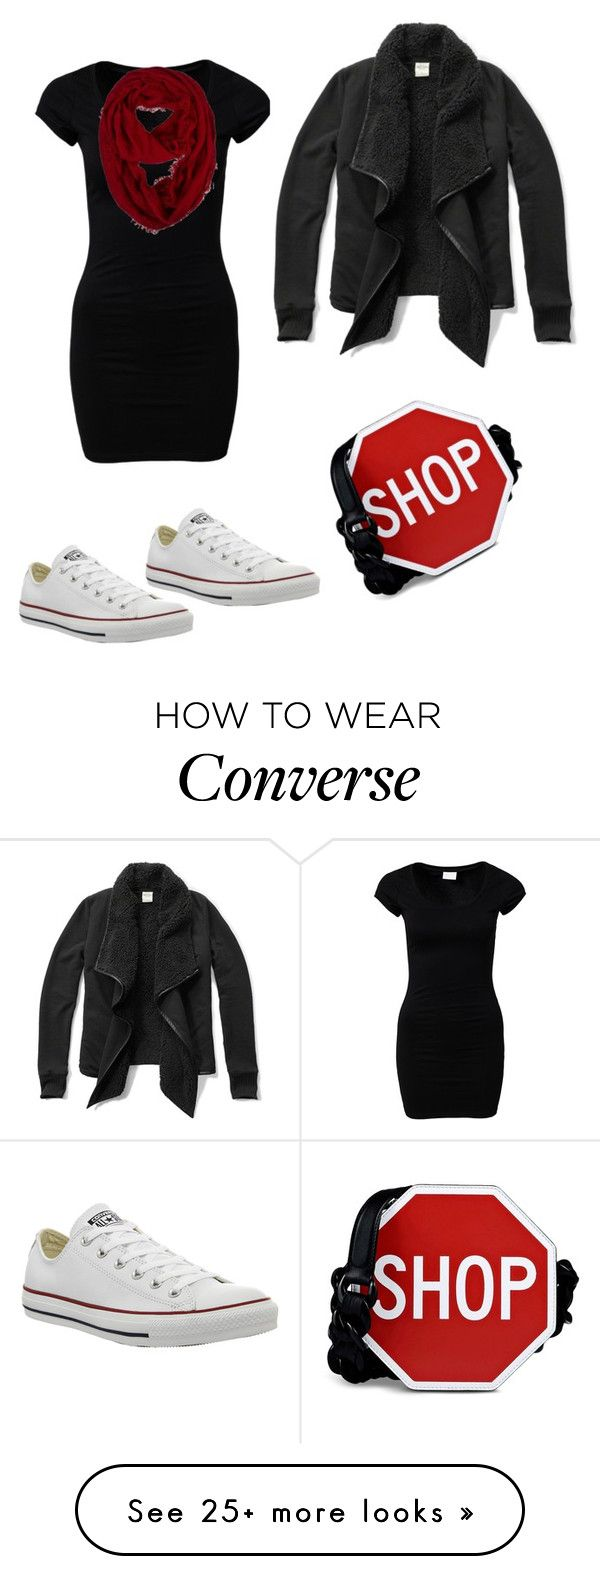 """Shopping!"" by princesaurbana on Polyvore featuring VILA, Moschino, Converse and Abercrombie & Fitch"